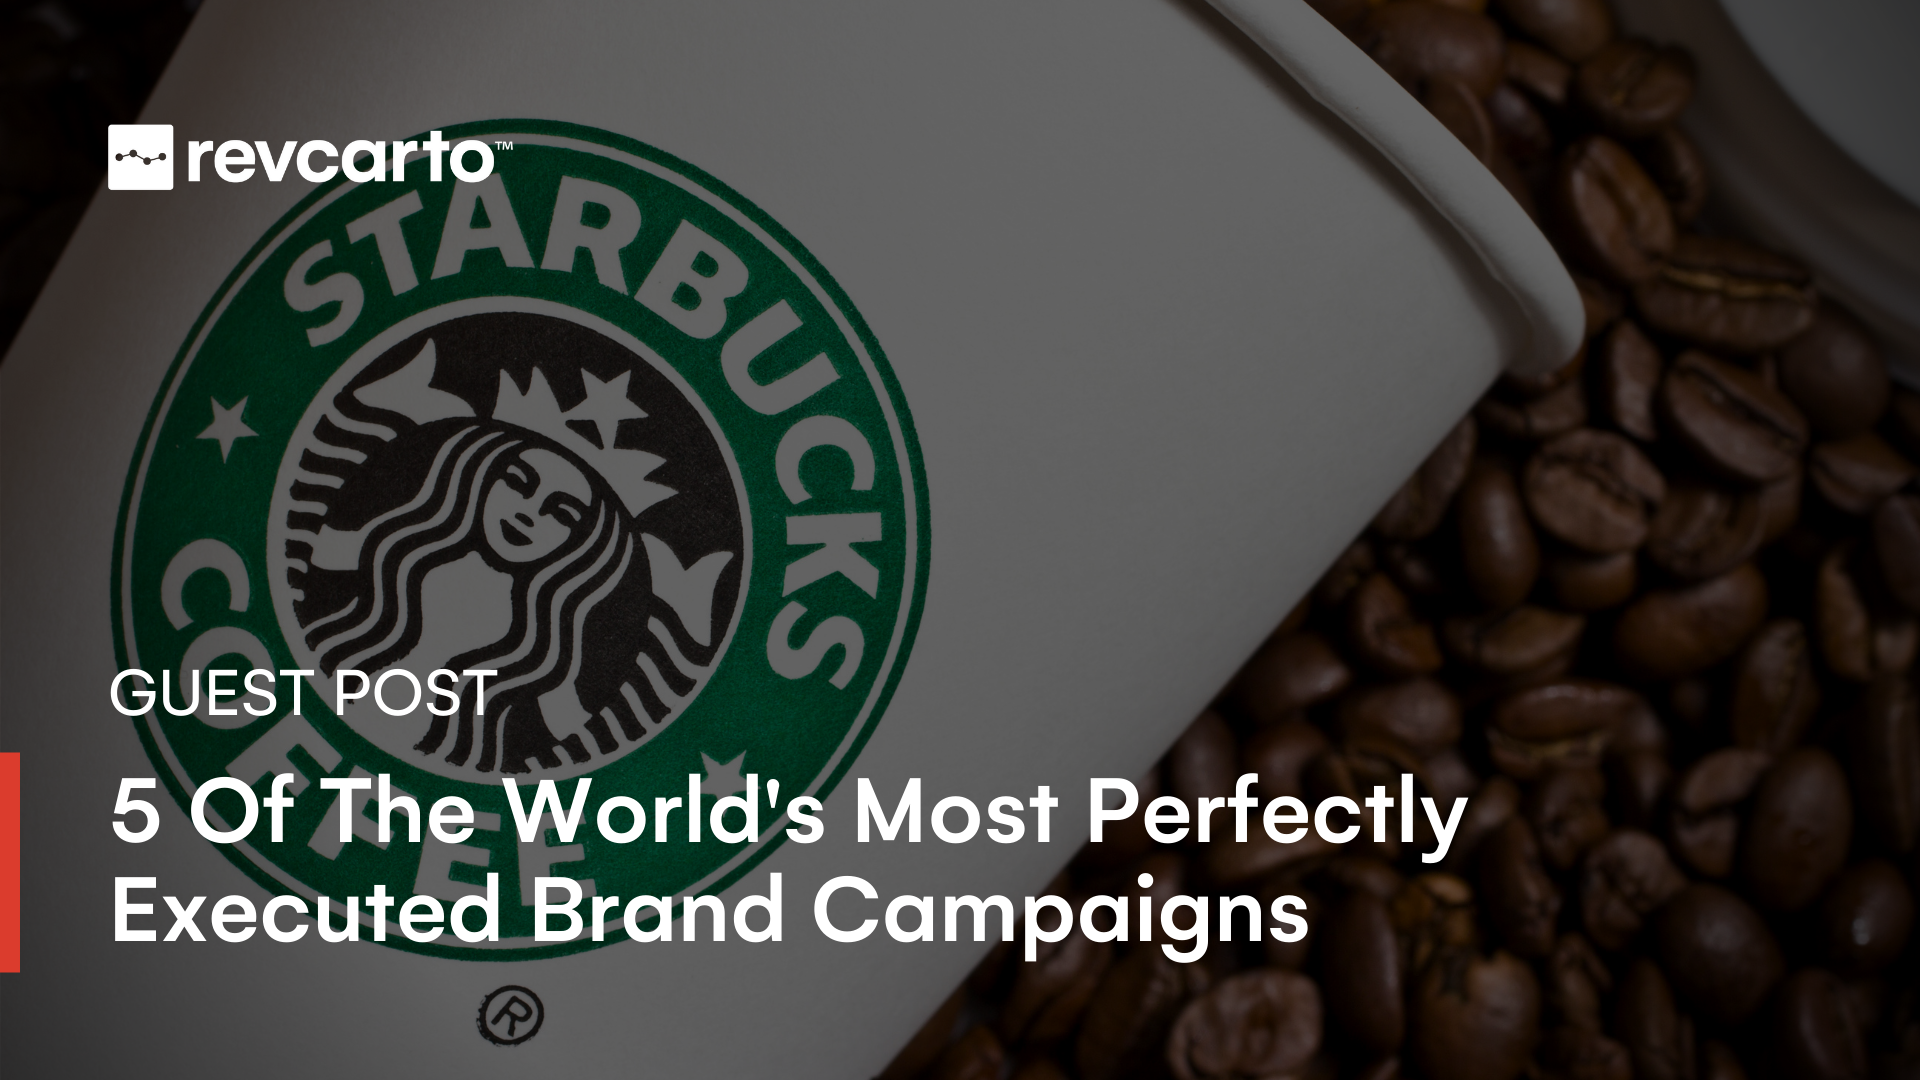 5 of The World's Most Perfectly Executed Brand Campaigns